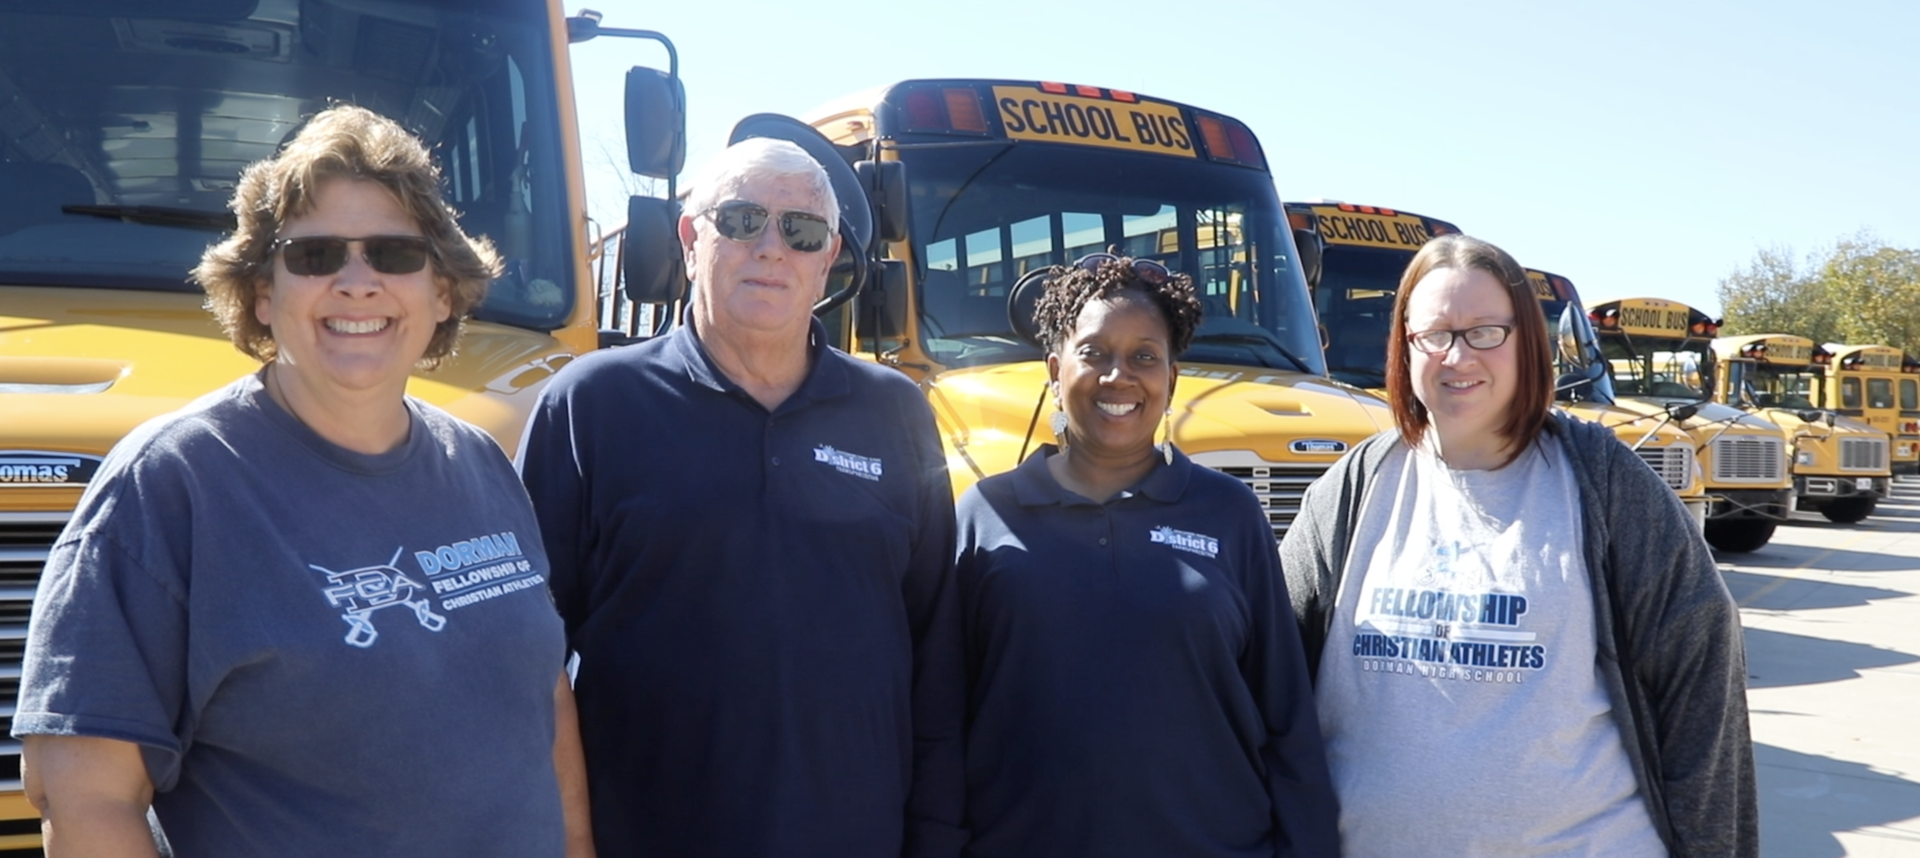 A picture of four drivers standing in front of the bus.